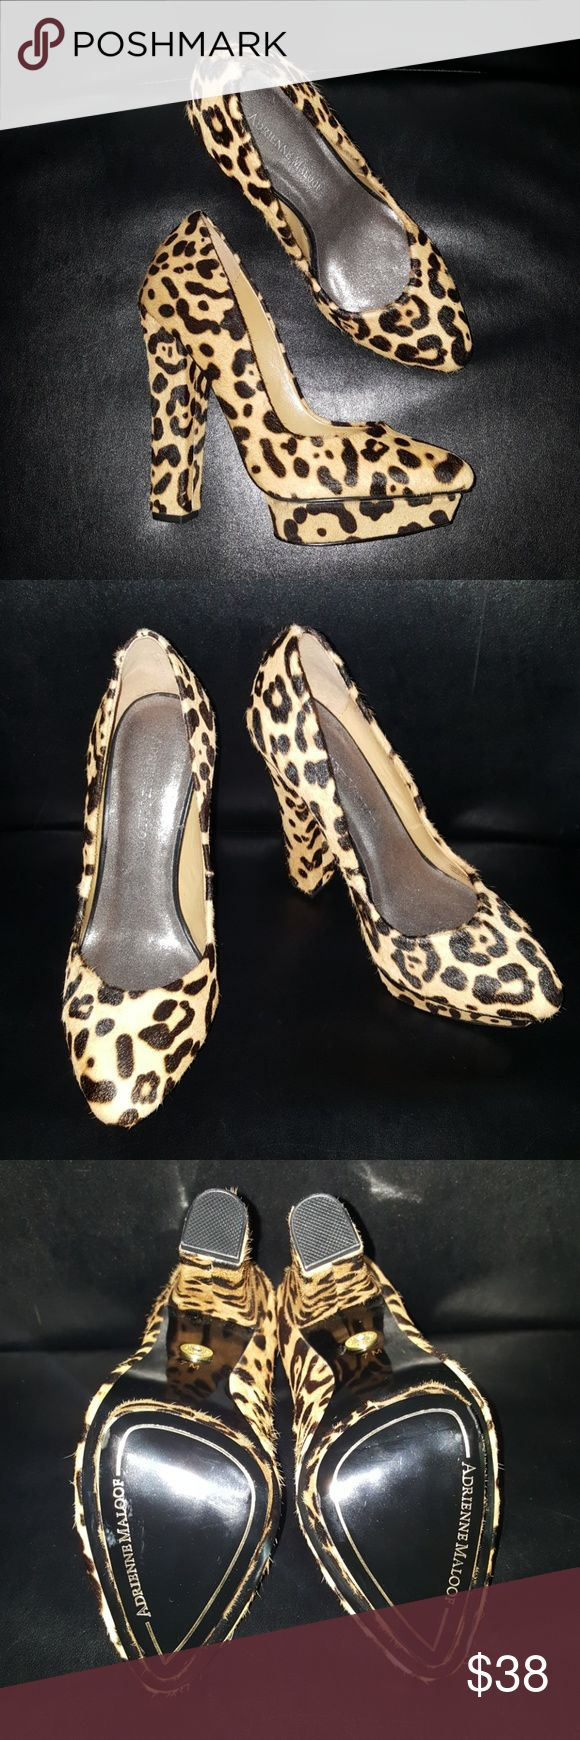 """ADRIENNE MALOOF Platform/Chunky Leopard Heel Adrienne Maloof calf hair leopard heel. 5 1/2"""" heel. These shoes have never been worn. Size 7M Adrienne Maloof Shoes Platforms"""